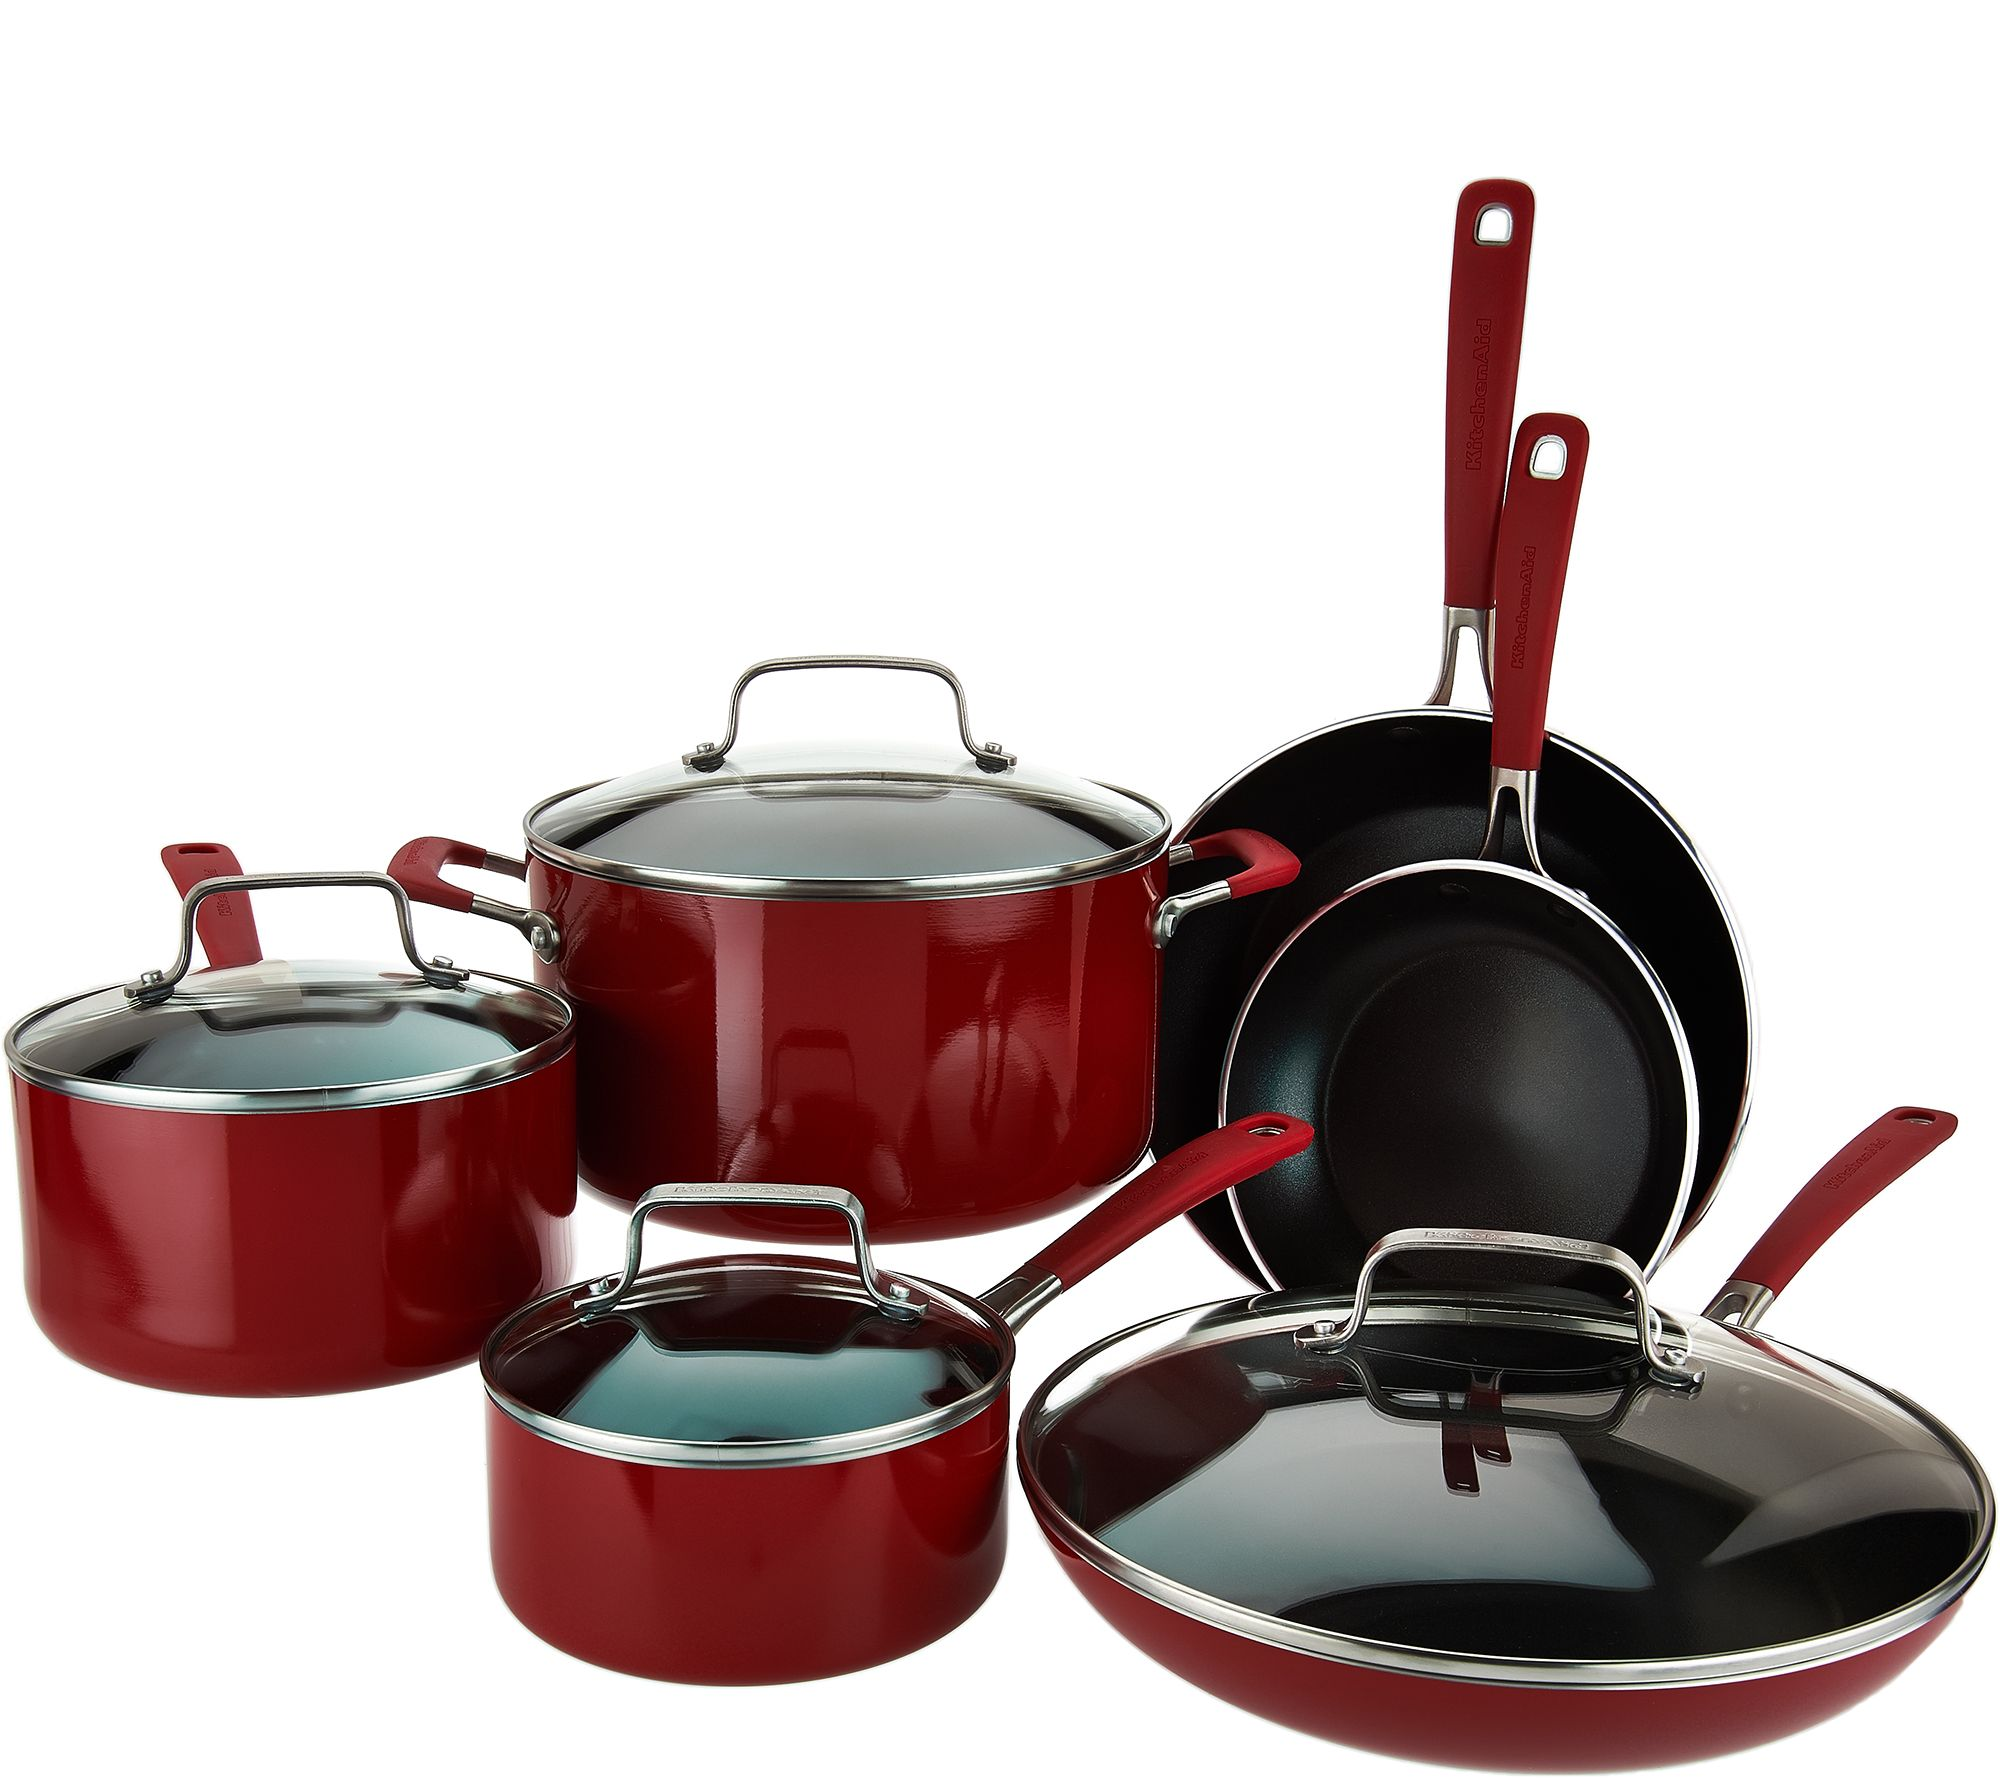 Kitchenaid 10 piece nonstick aluminum cookware set page 1 - Kitchenaid aluminum nonstick piece cookware set ...